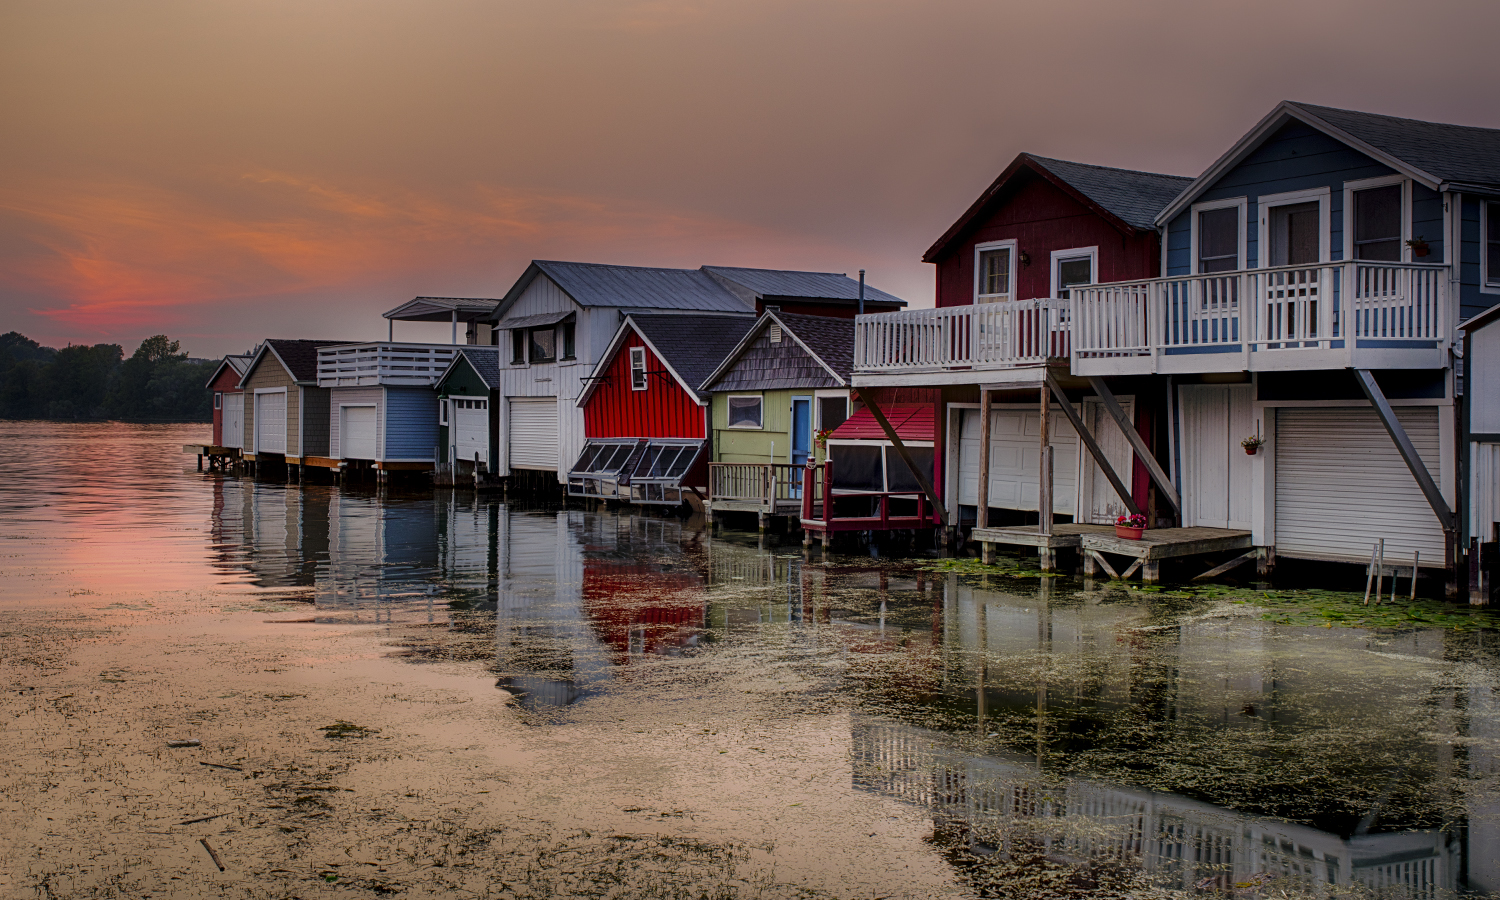 A view of the iconic Boathouse Row at the end of Canandaigua City Pier.